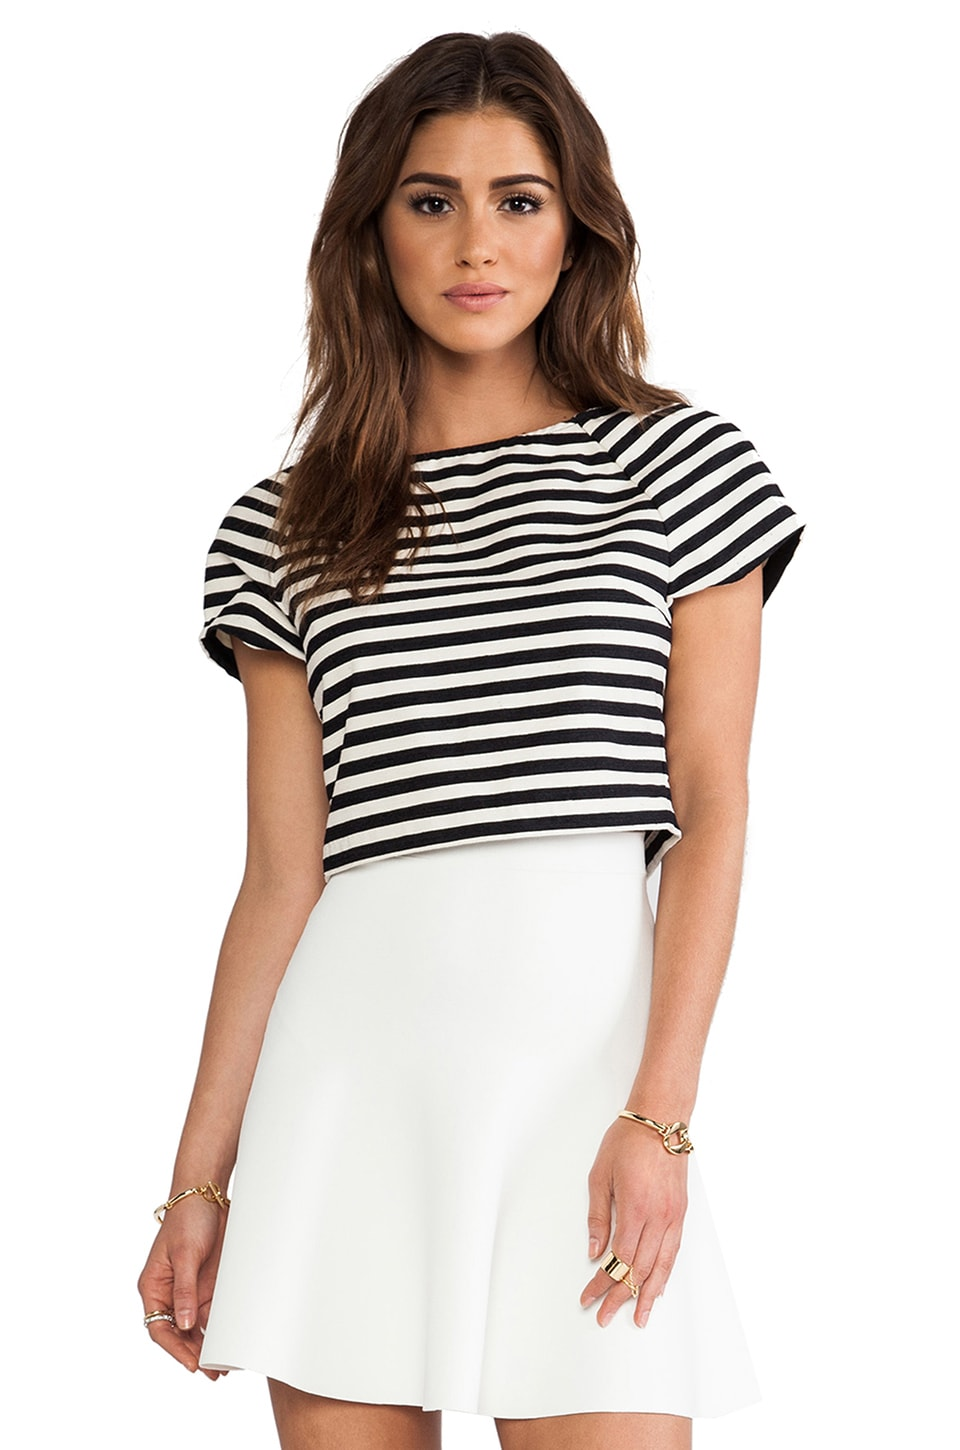 Alice + Olivia Connelly Striped Crop Top in Black & White